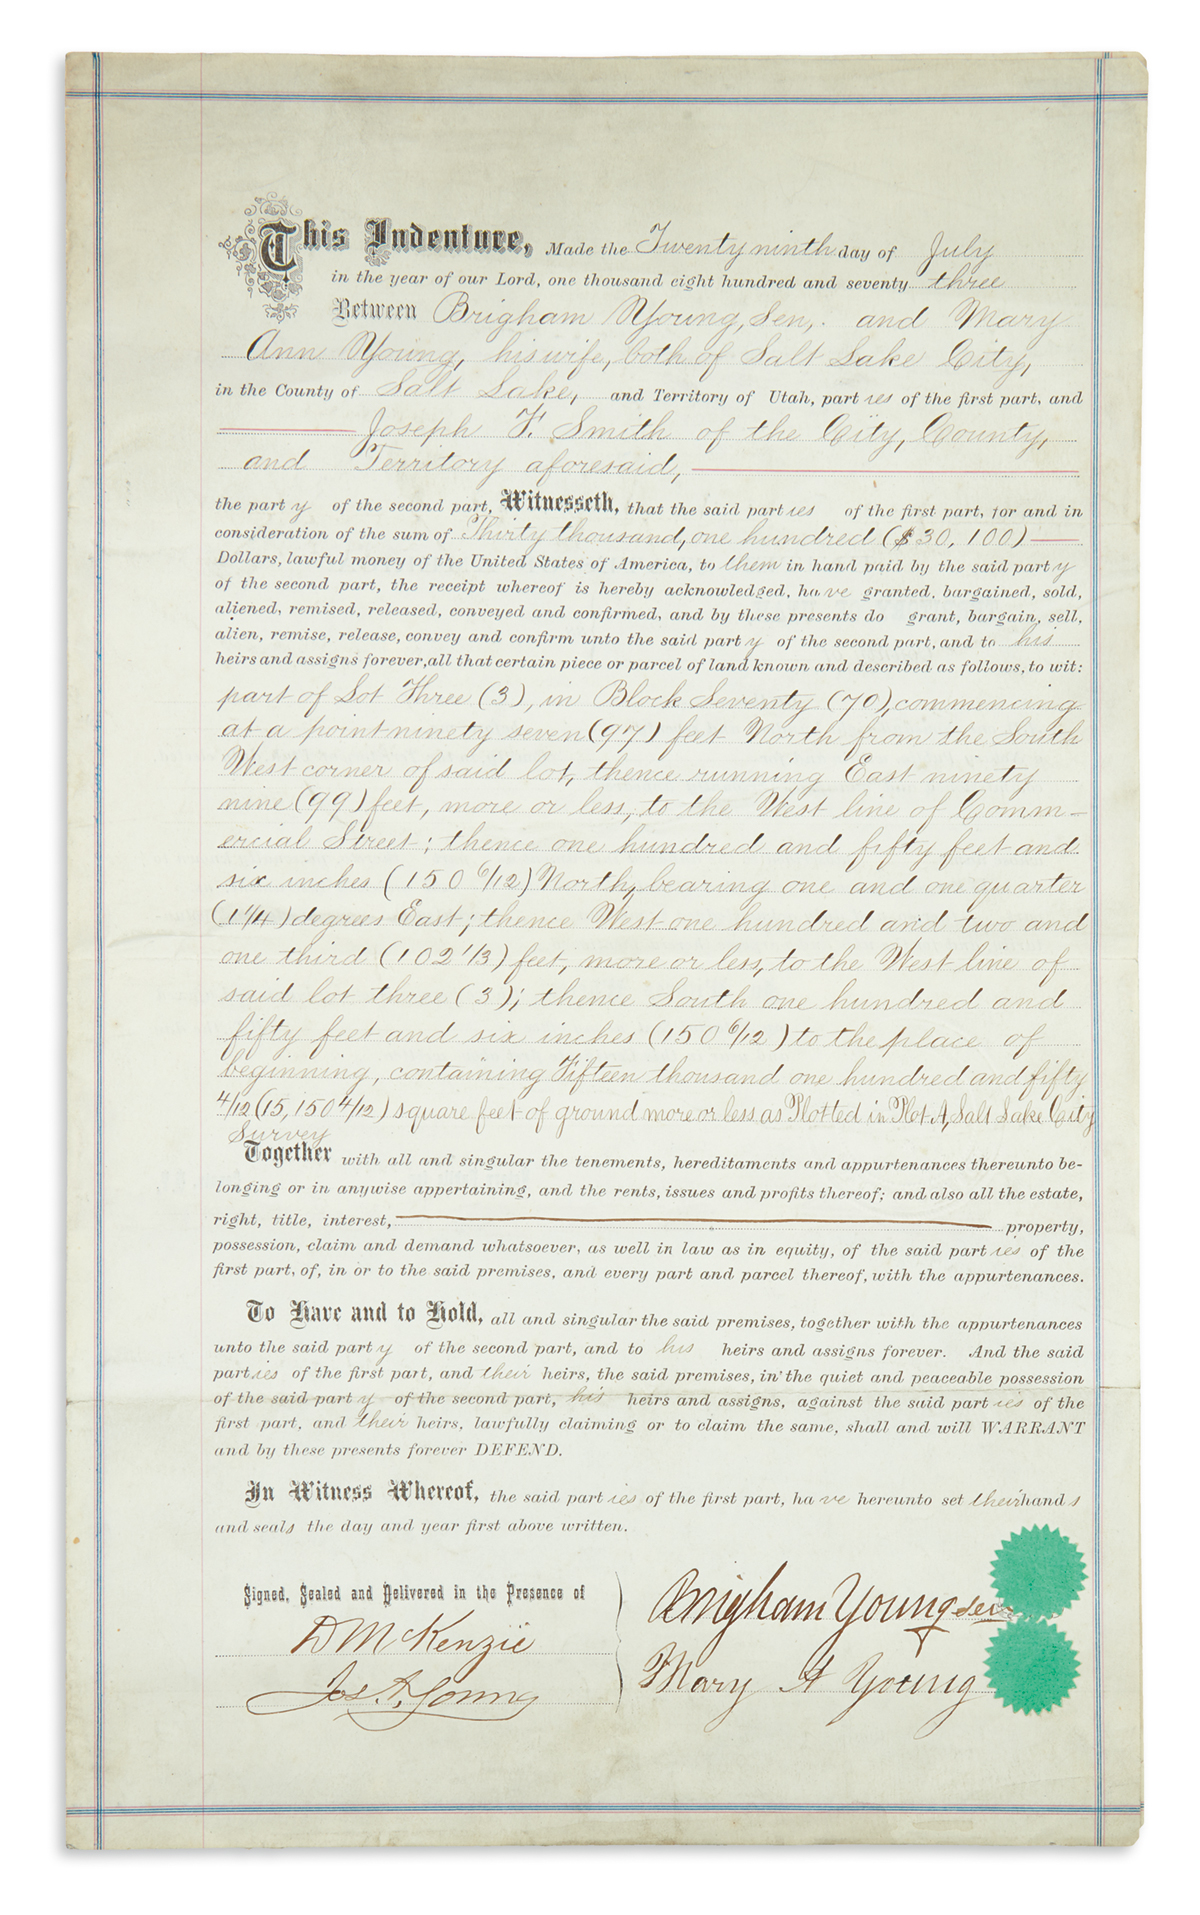 YOUNG-BRIGHAM-Partly-printed-Document-Signed-deed-of-sale-tr